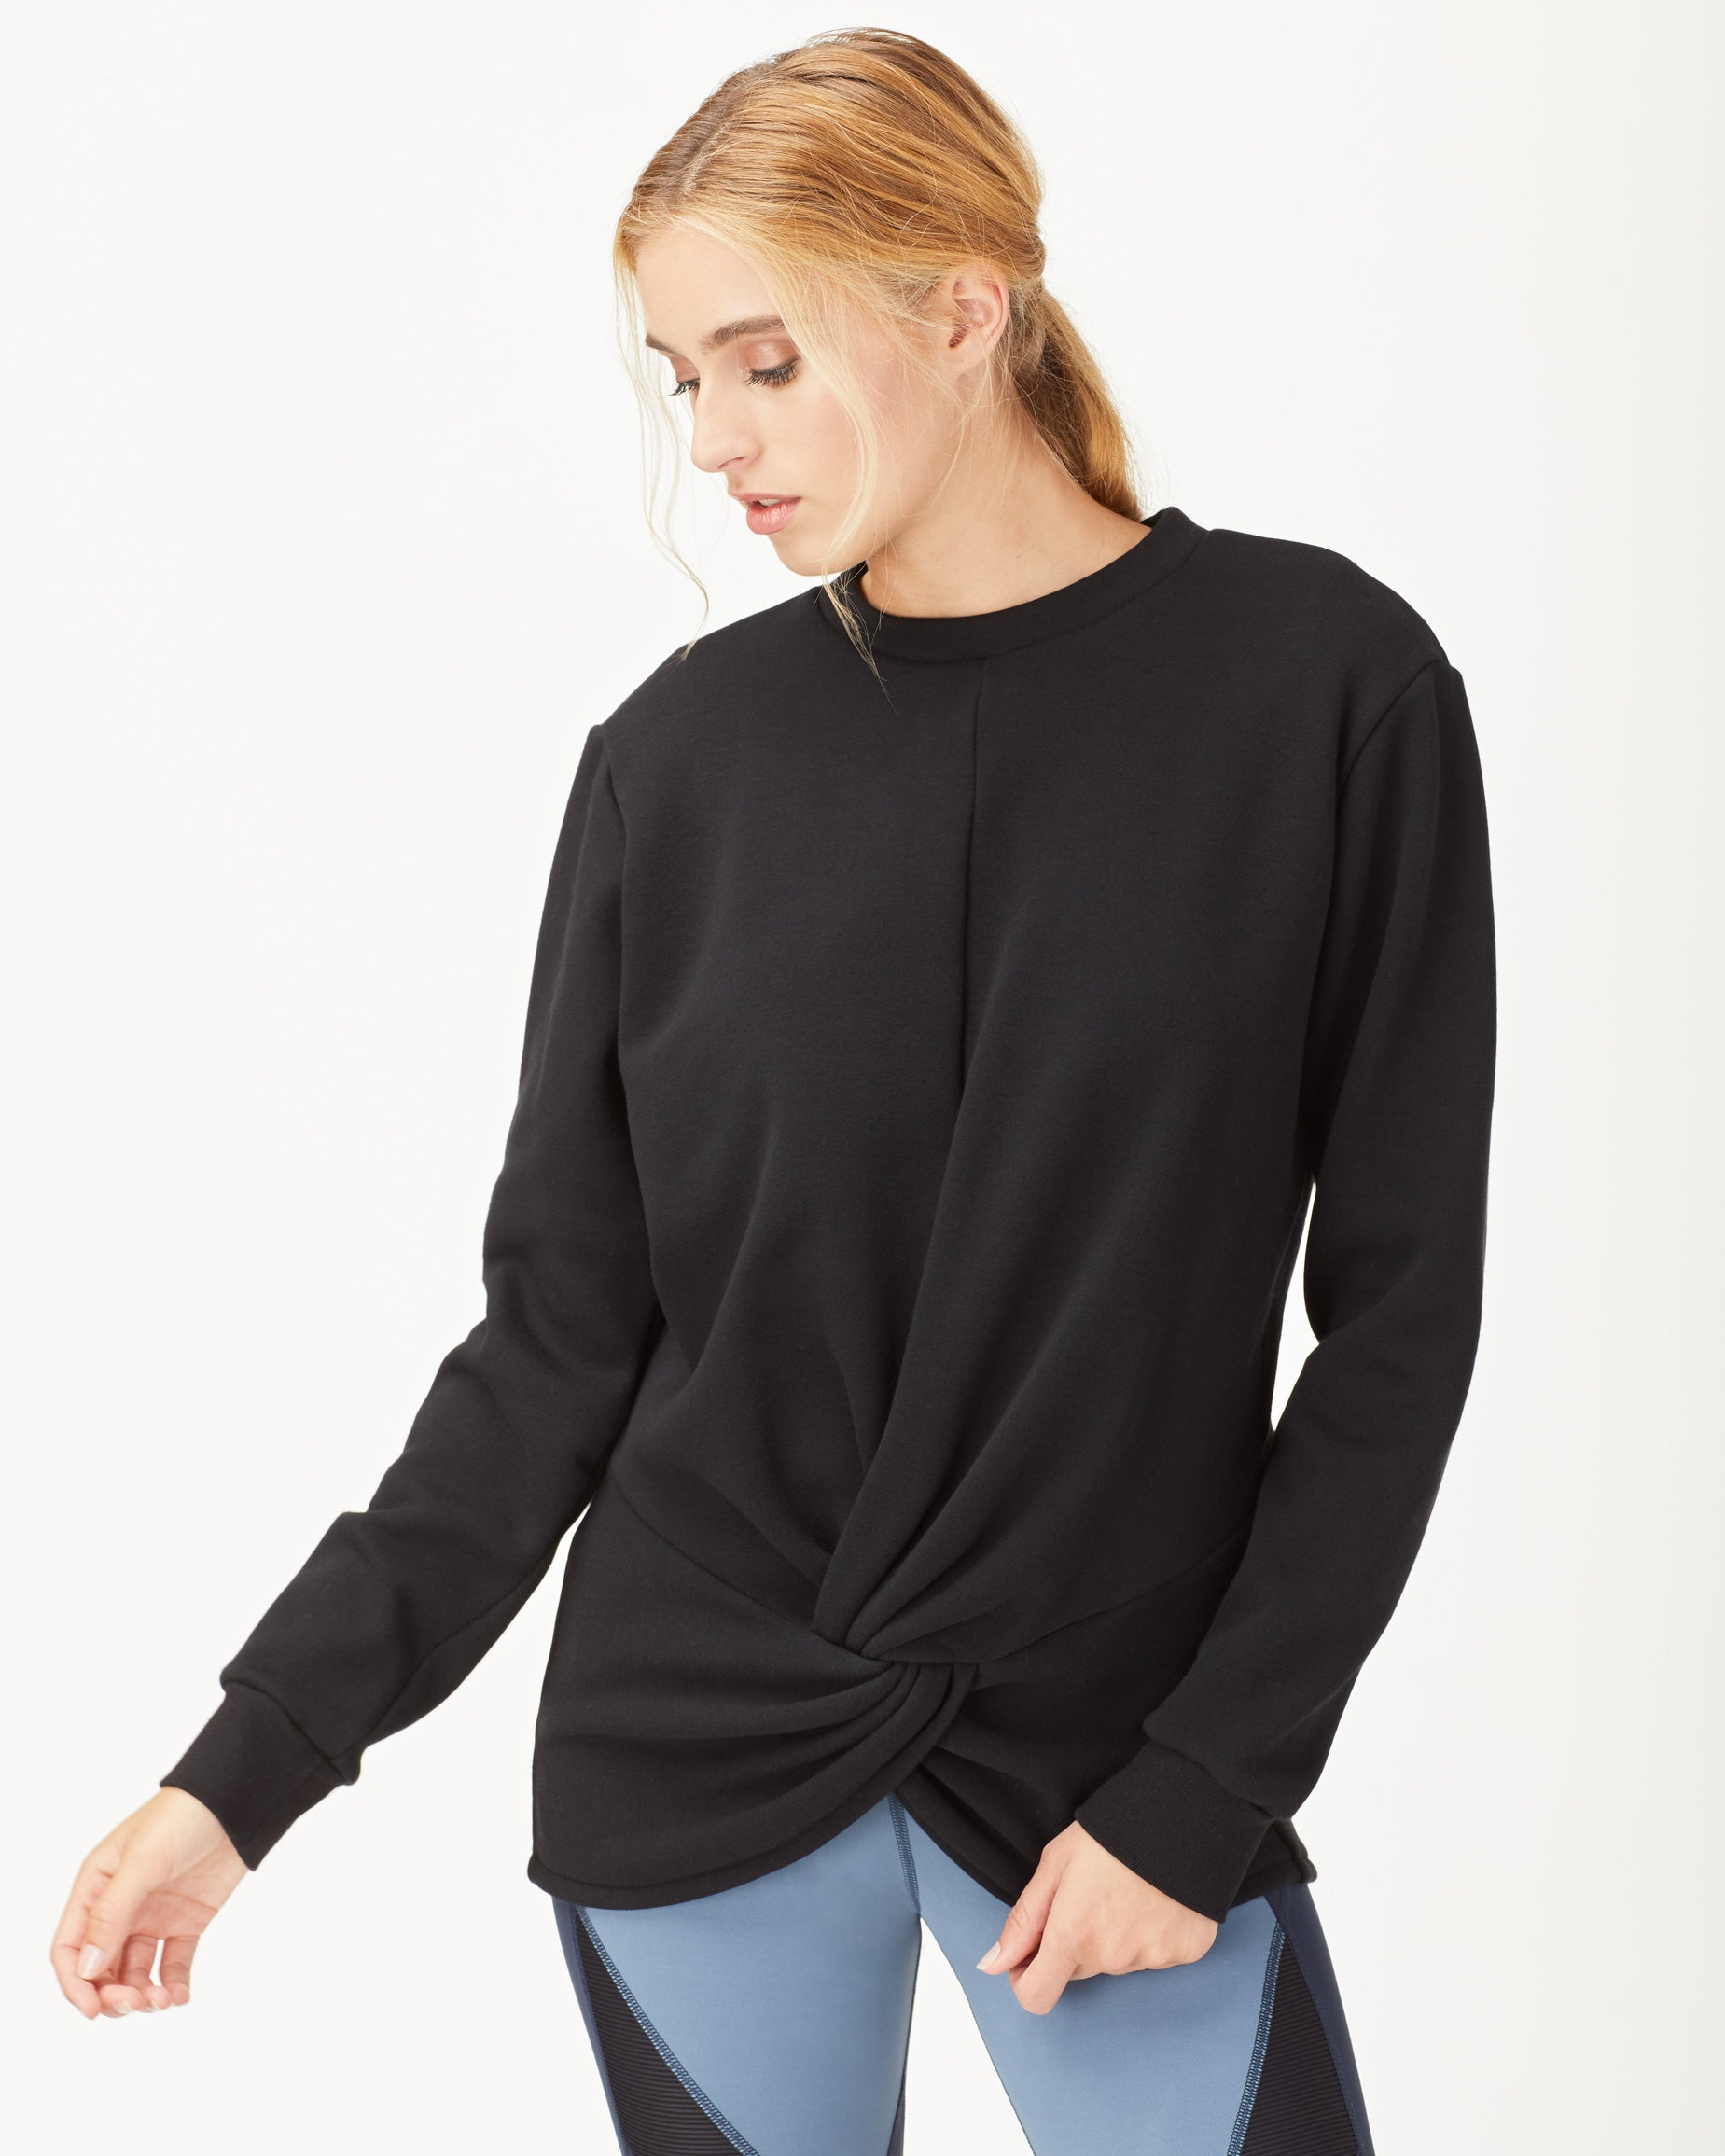 farfalla-sweatshirt-black